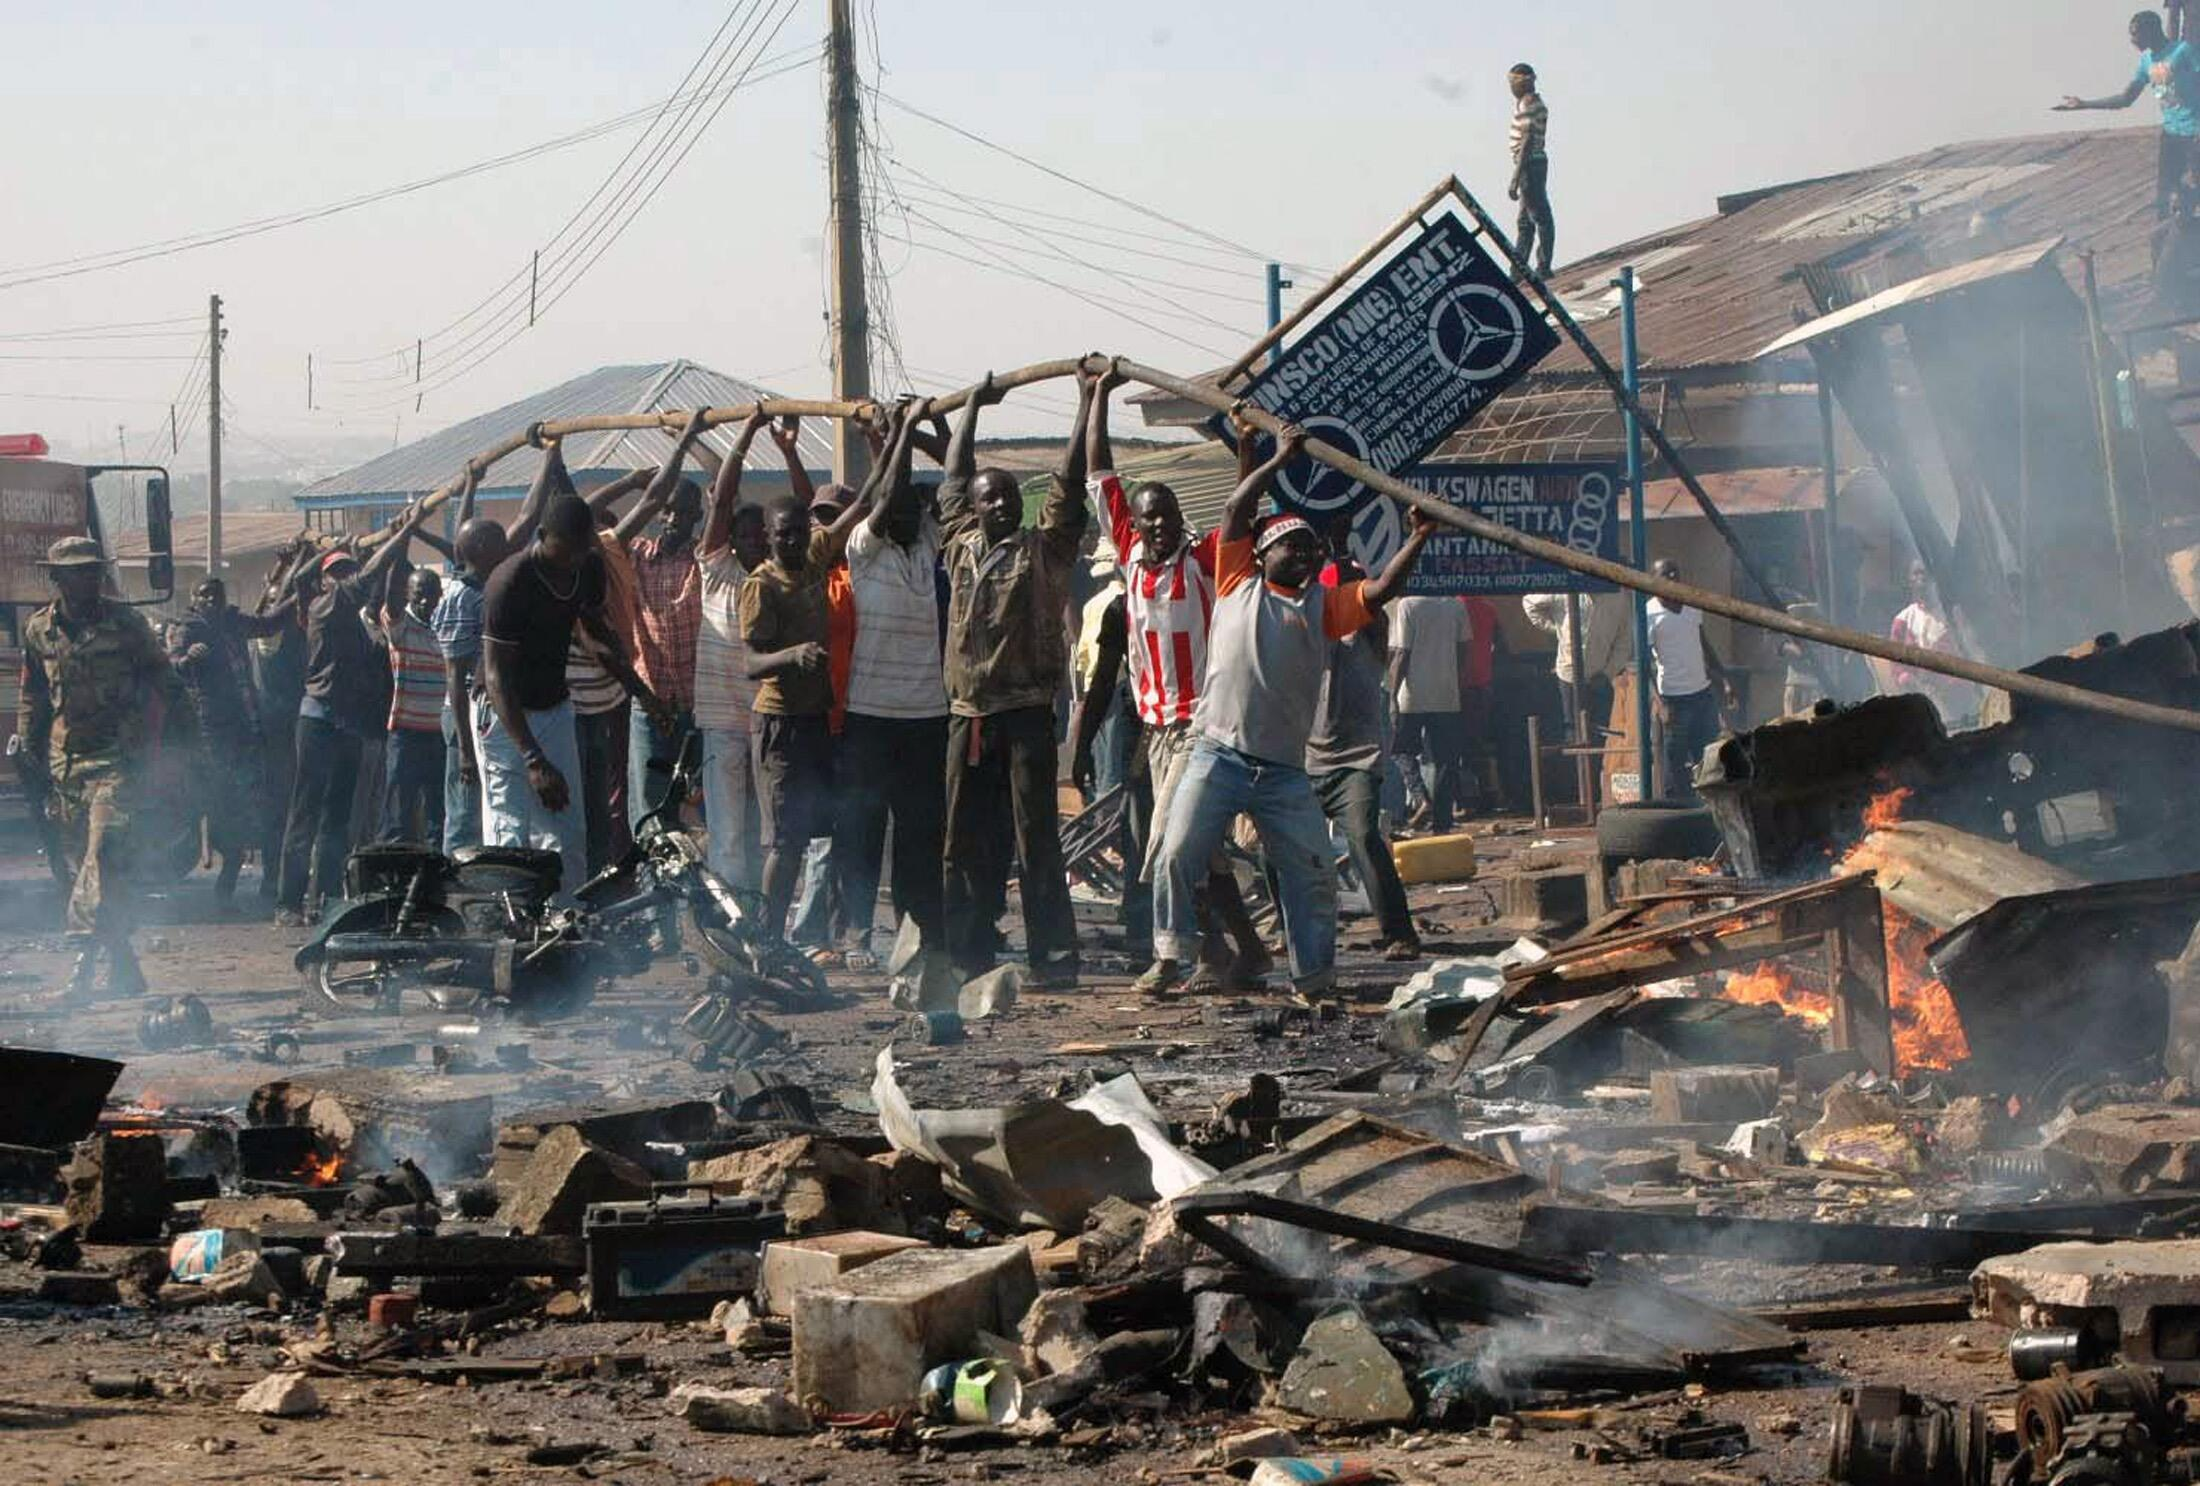 People help to carry a water hose as they try to put a fire at the scene of a bomb explosion in Kaduna, Nigeria